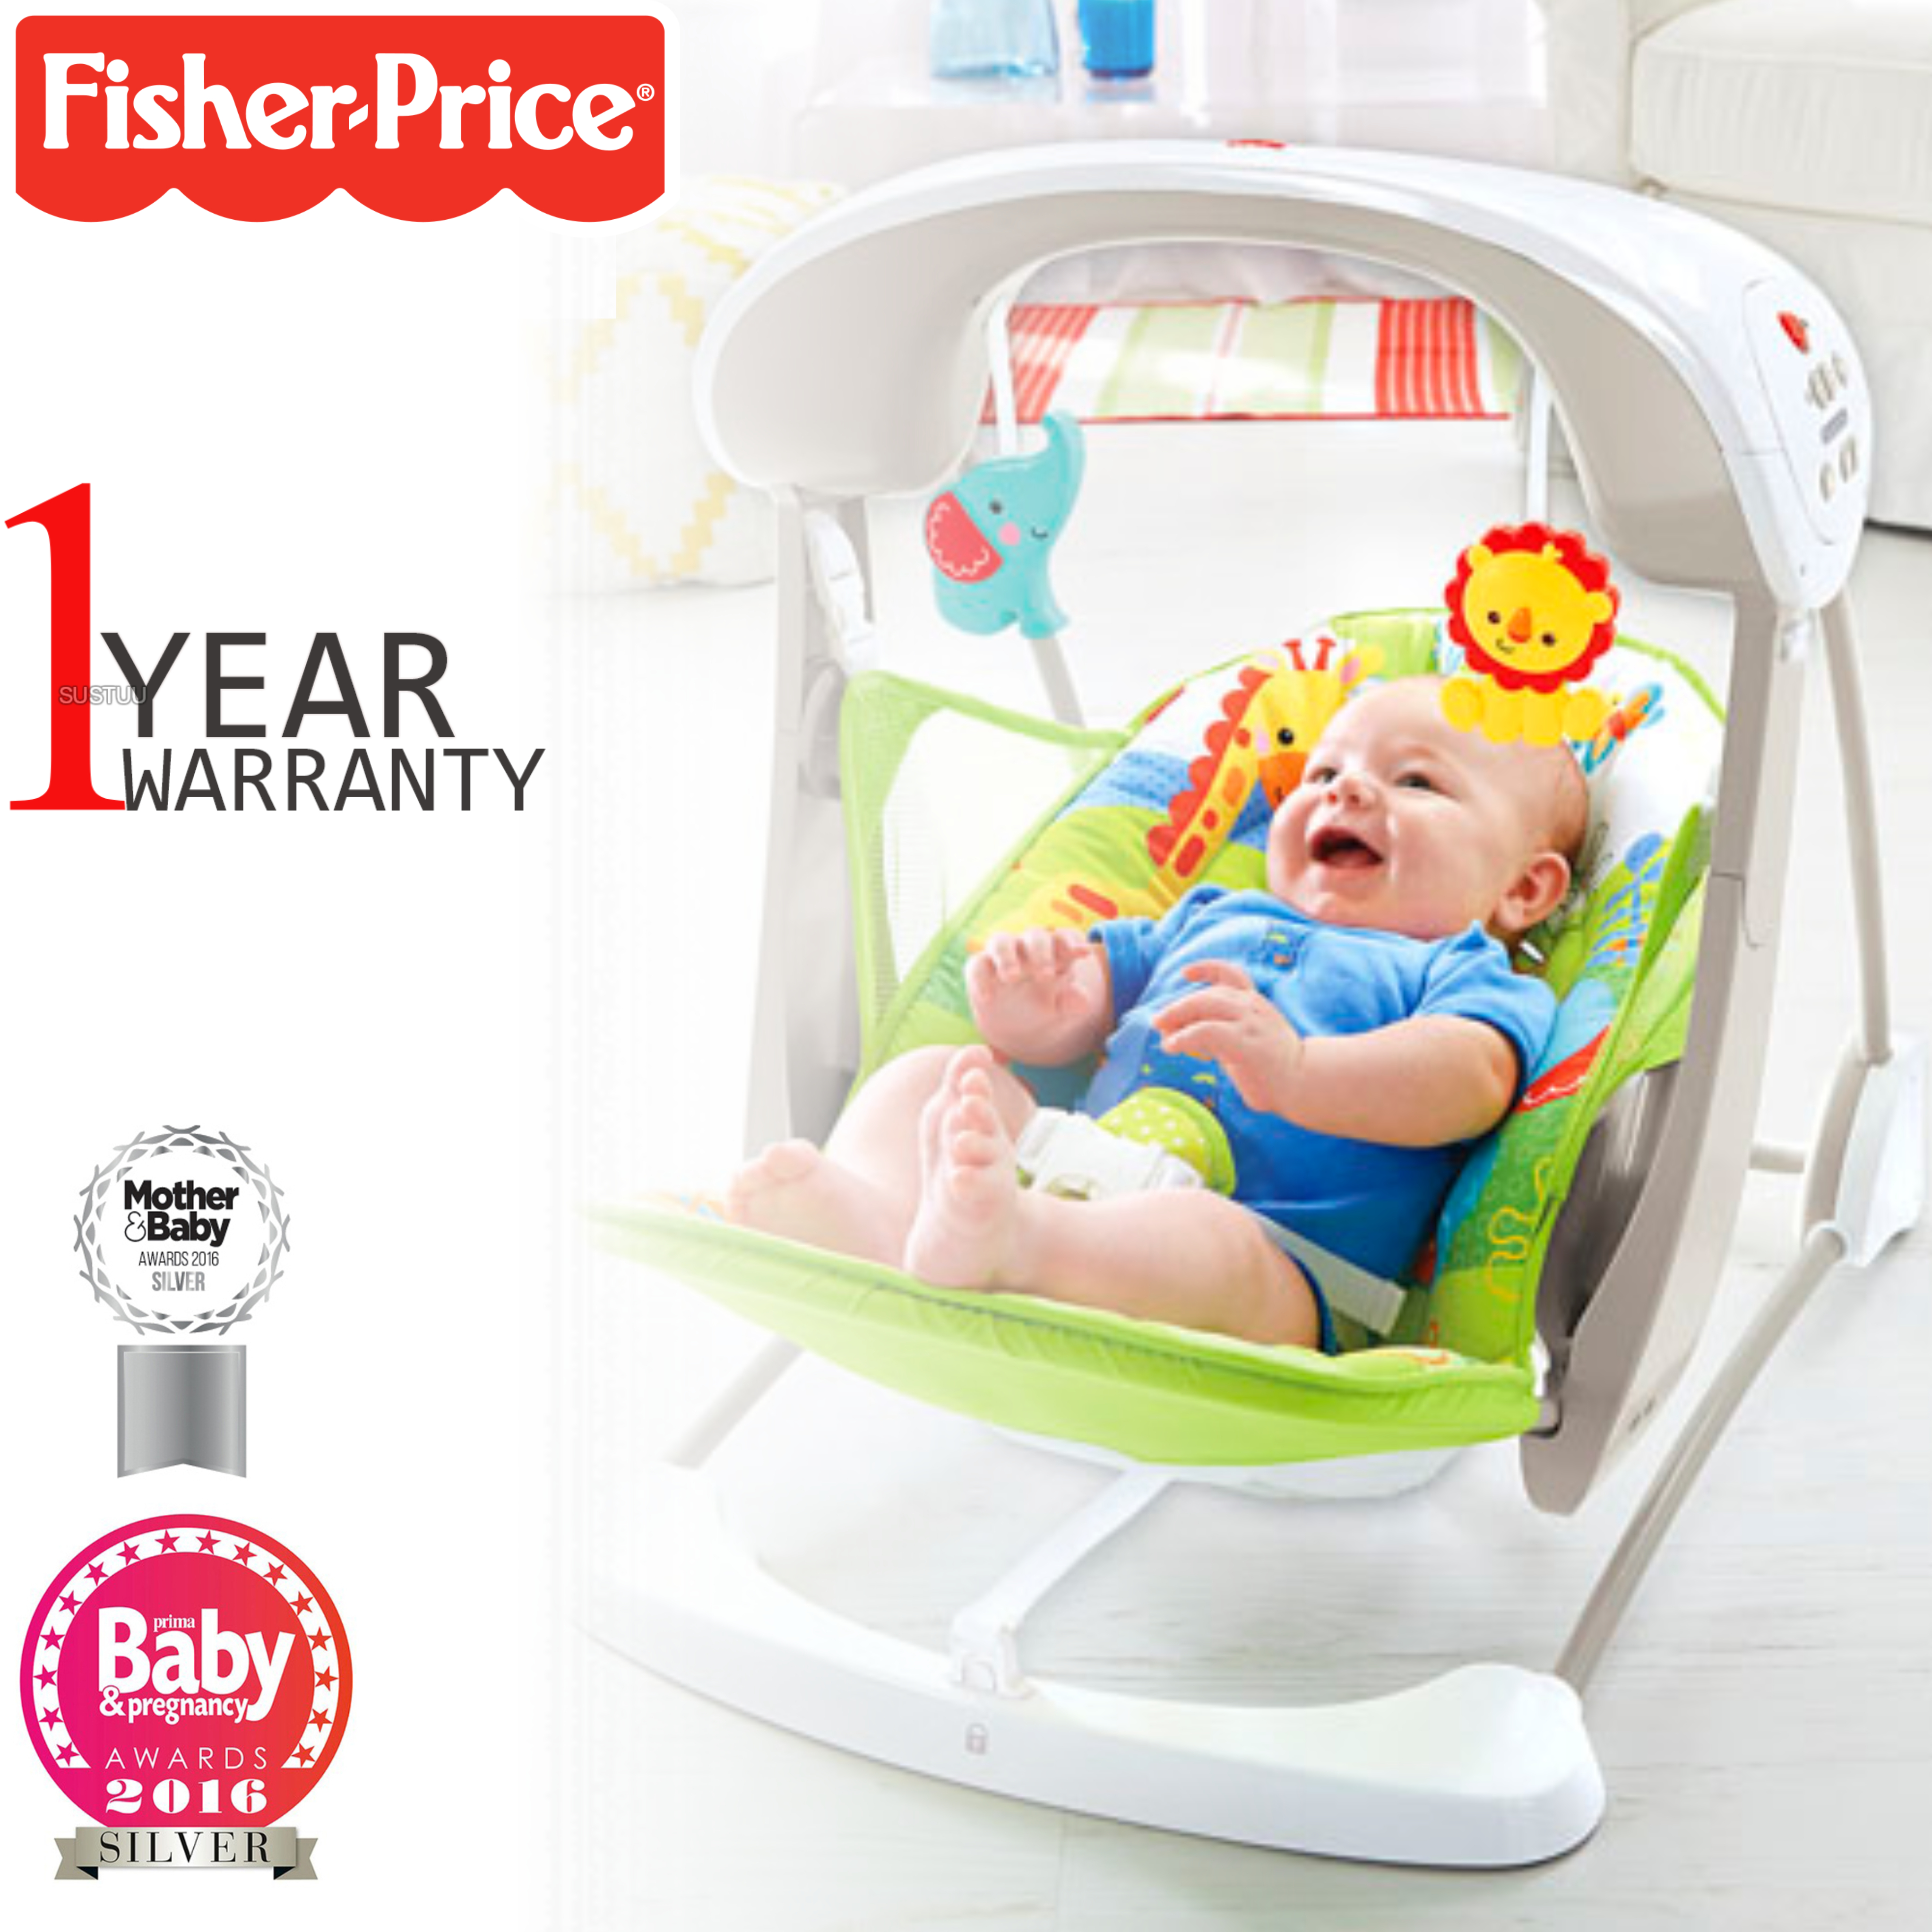 Fisher-Price Rainforest Take Along Swing & Seat For Kids    Music,Sound,Vibrations